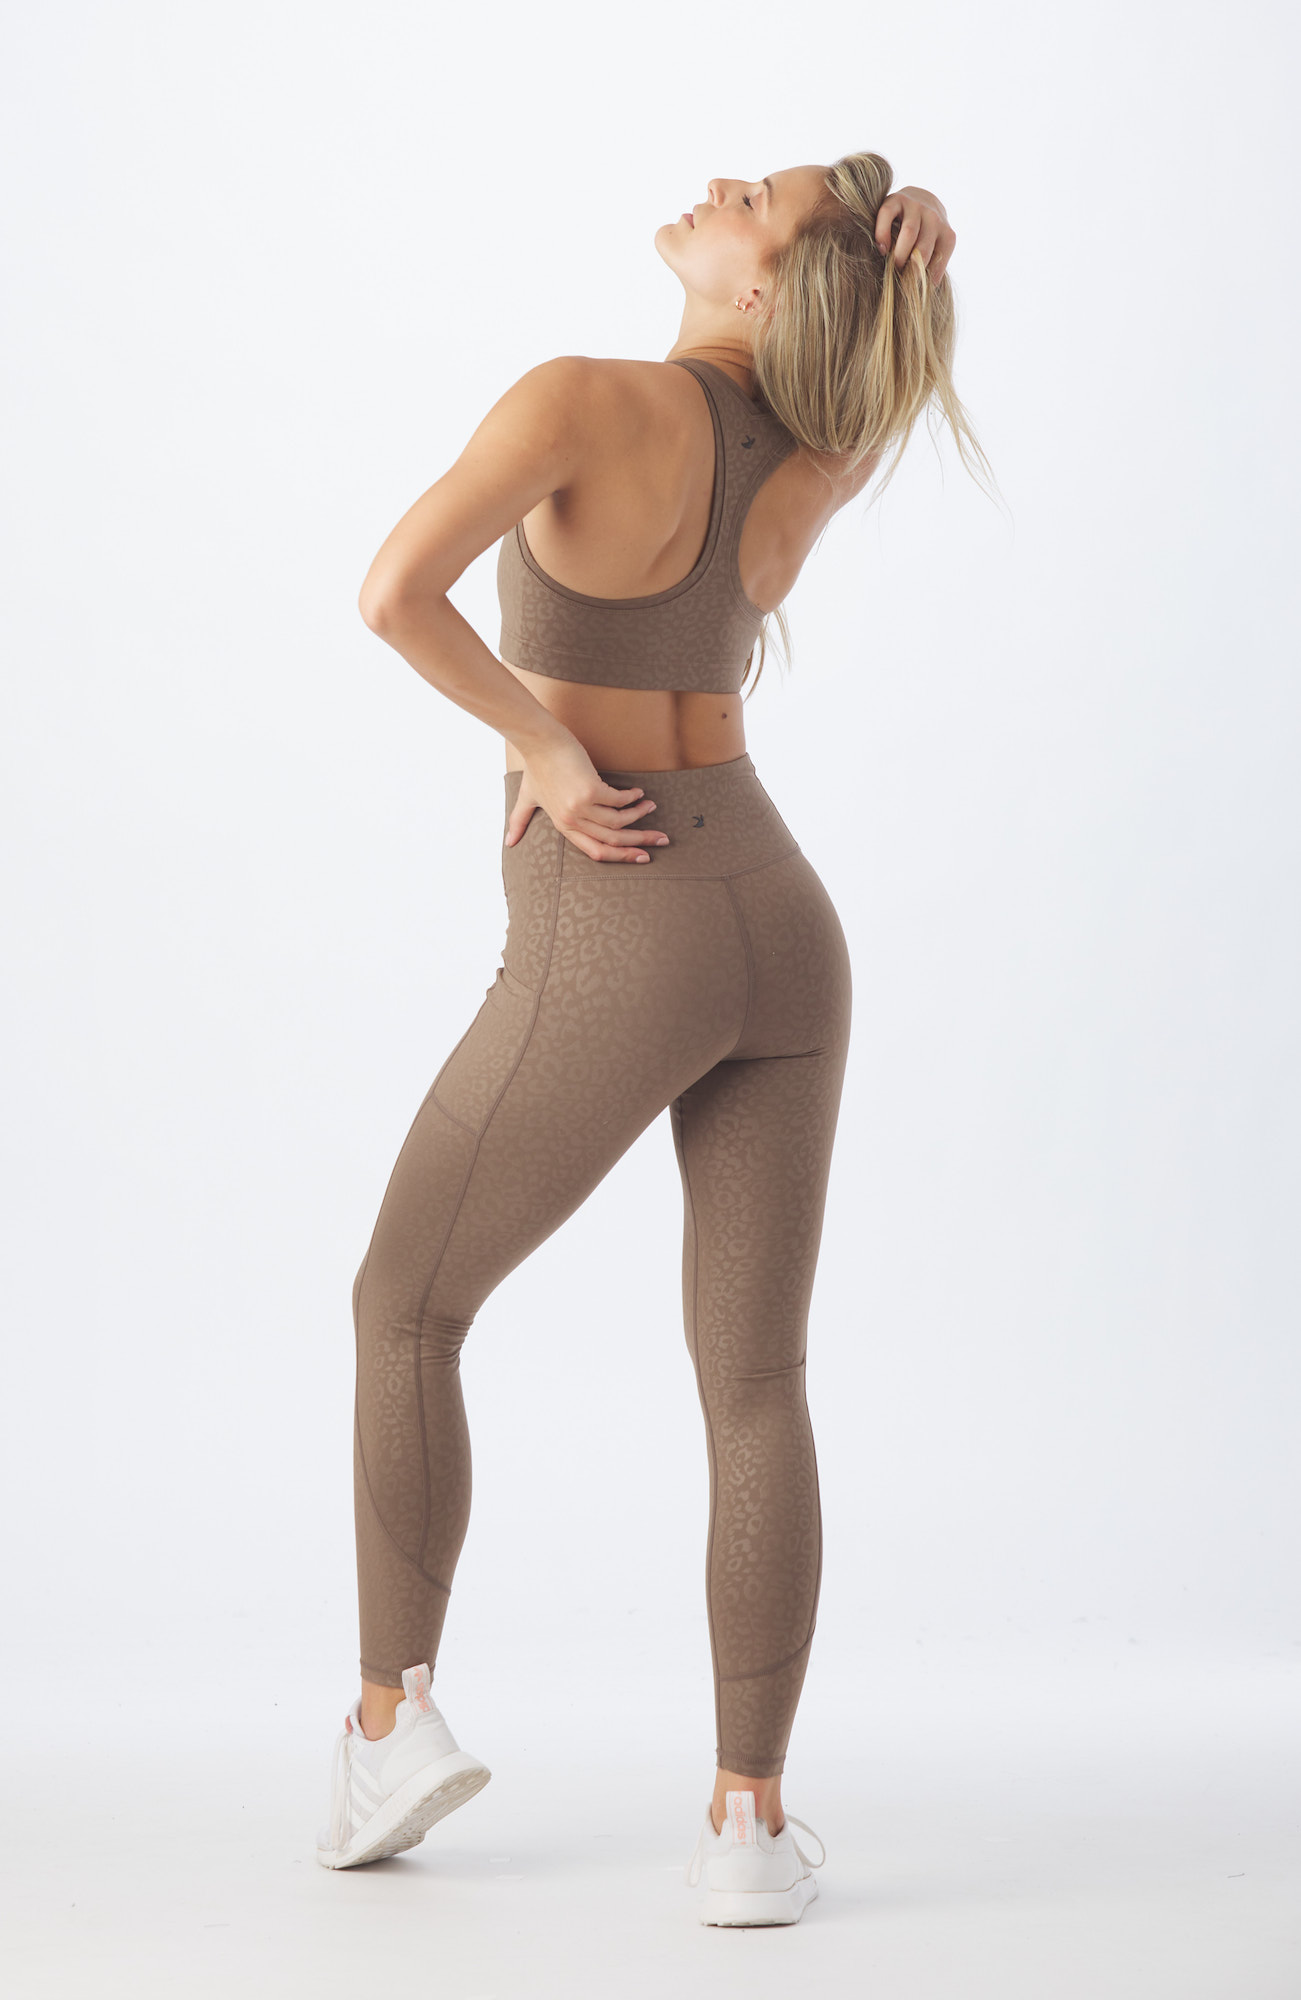 GLYDER-active-workout-Model-Onmodel-in-studio-instudio-Damion-Lloyd-Photography-Commercial-Product-Apparel-Clothing-Los-Angeles-Orange-County-female-woman-brown